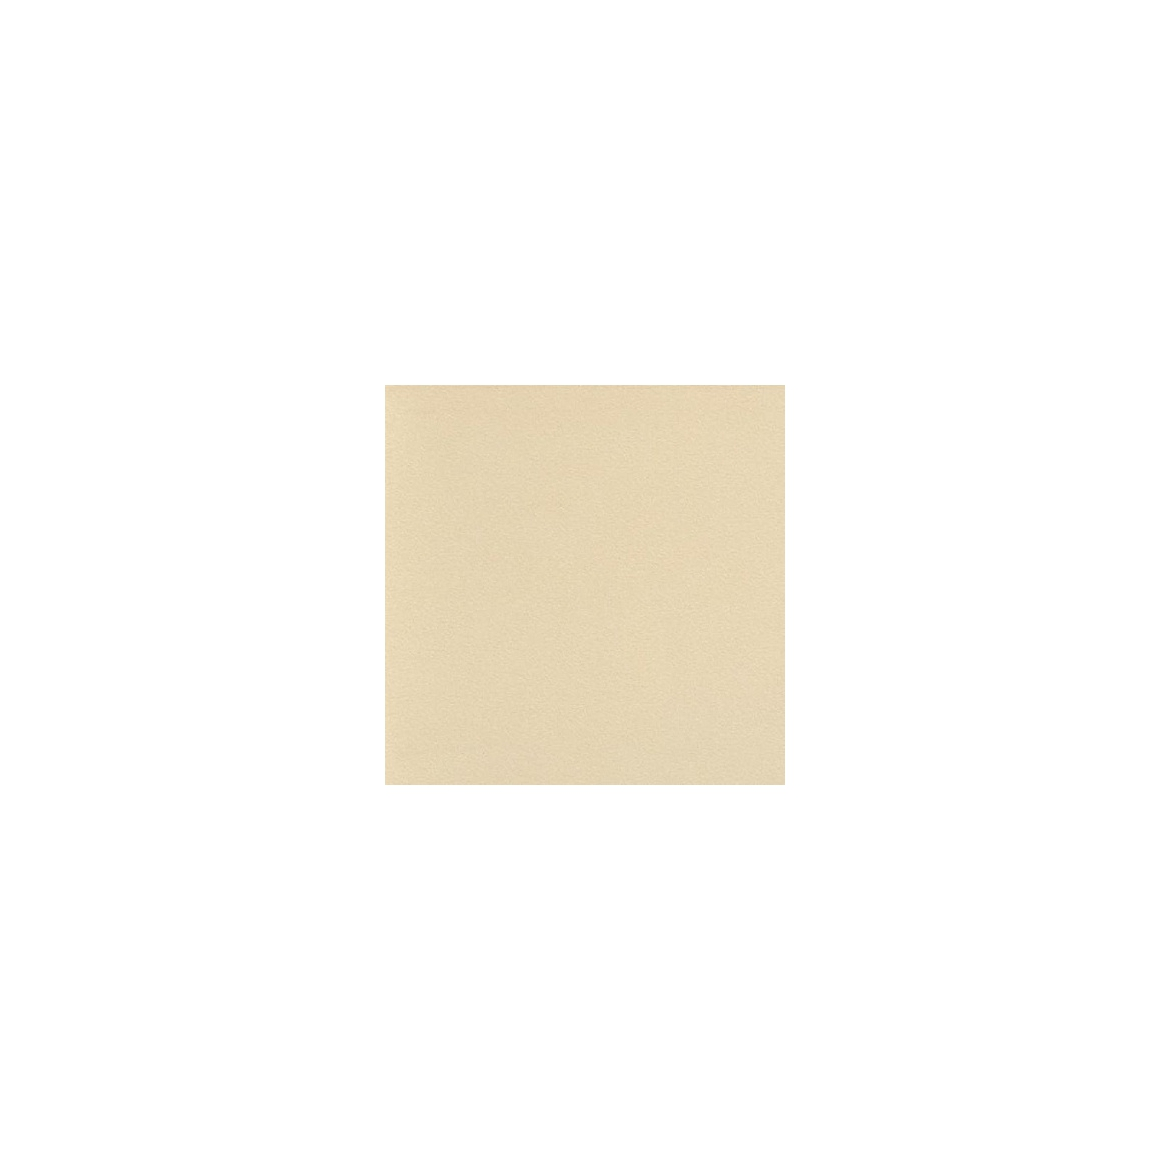 https://cerdesign.pl/536-large_default/p3783-gardenia-luminor-tu-beige-325x325-19620.jpg